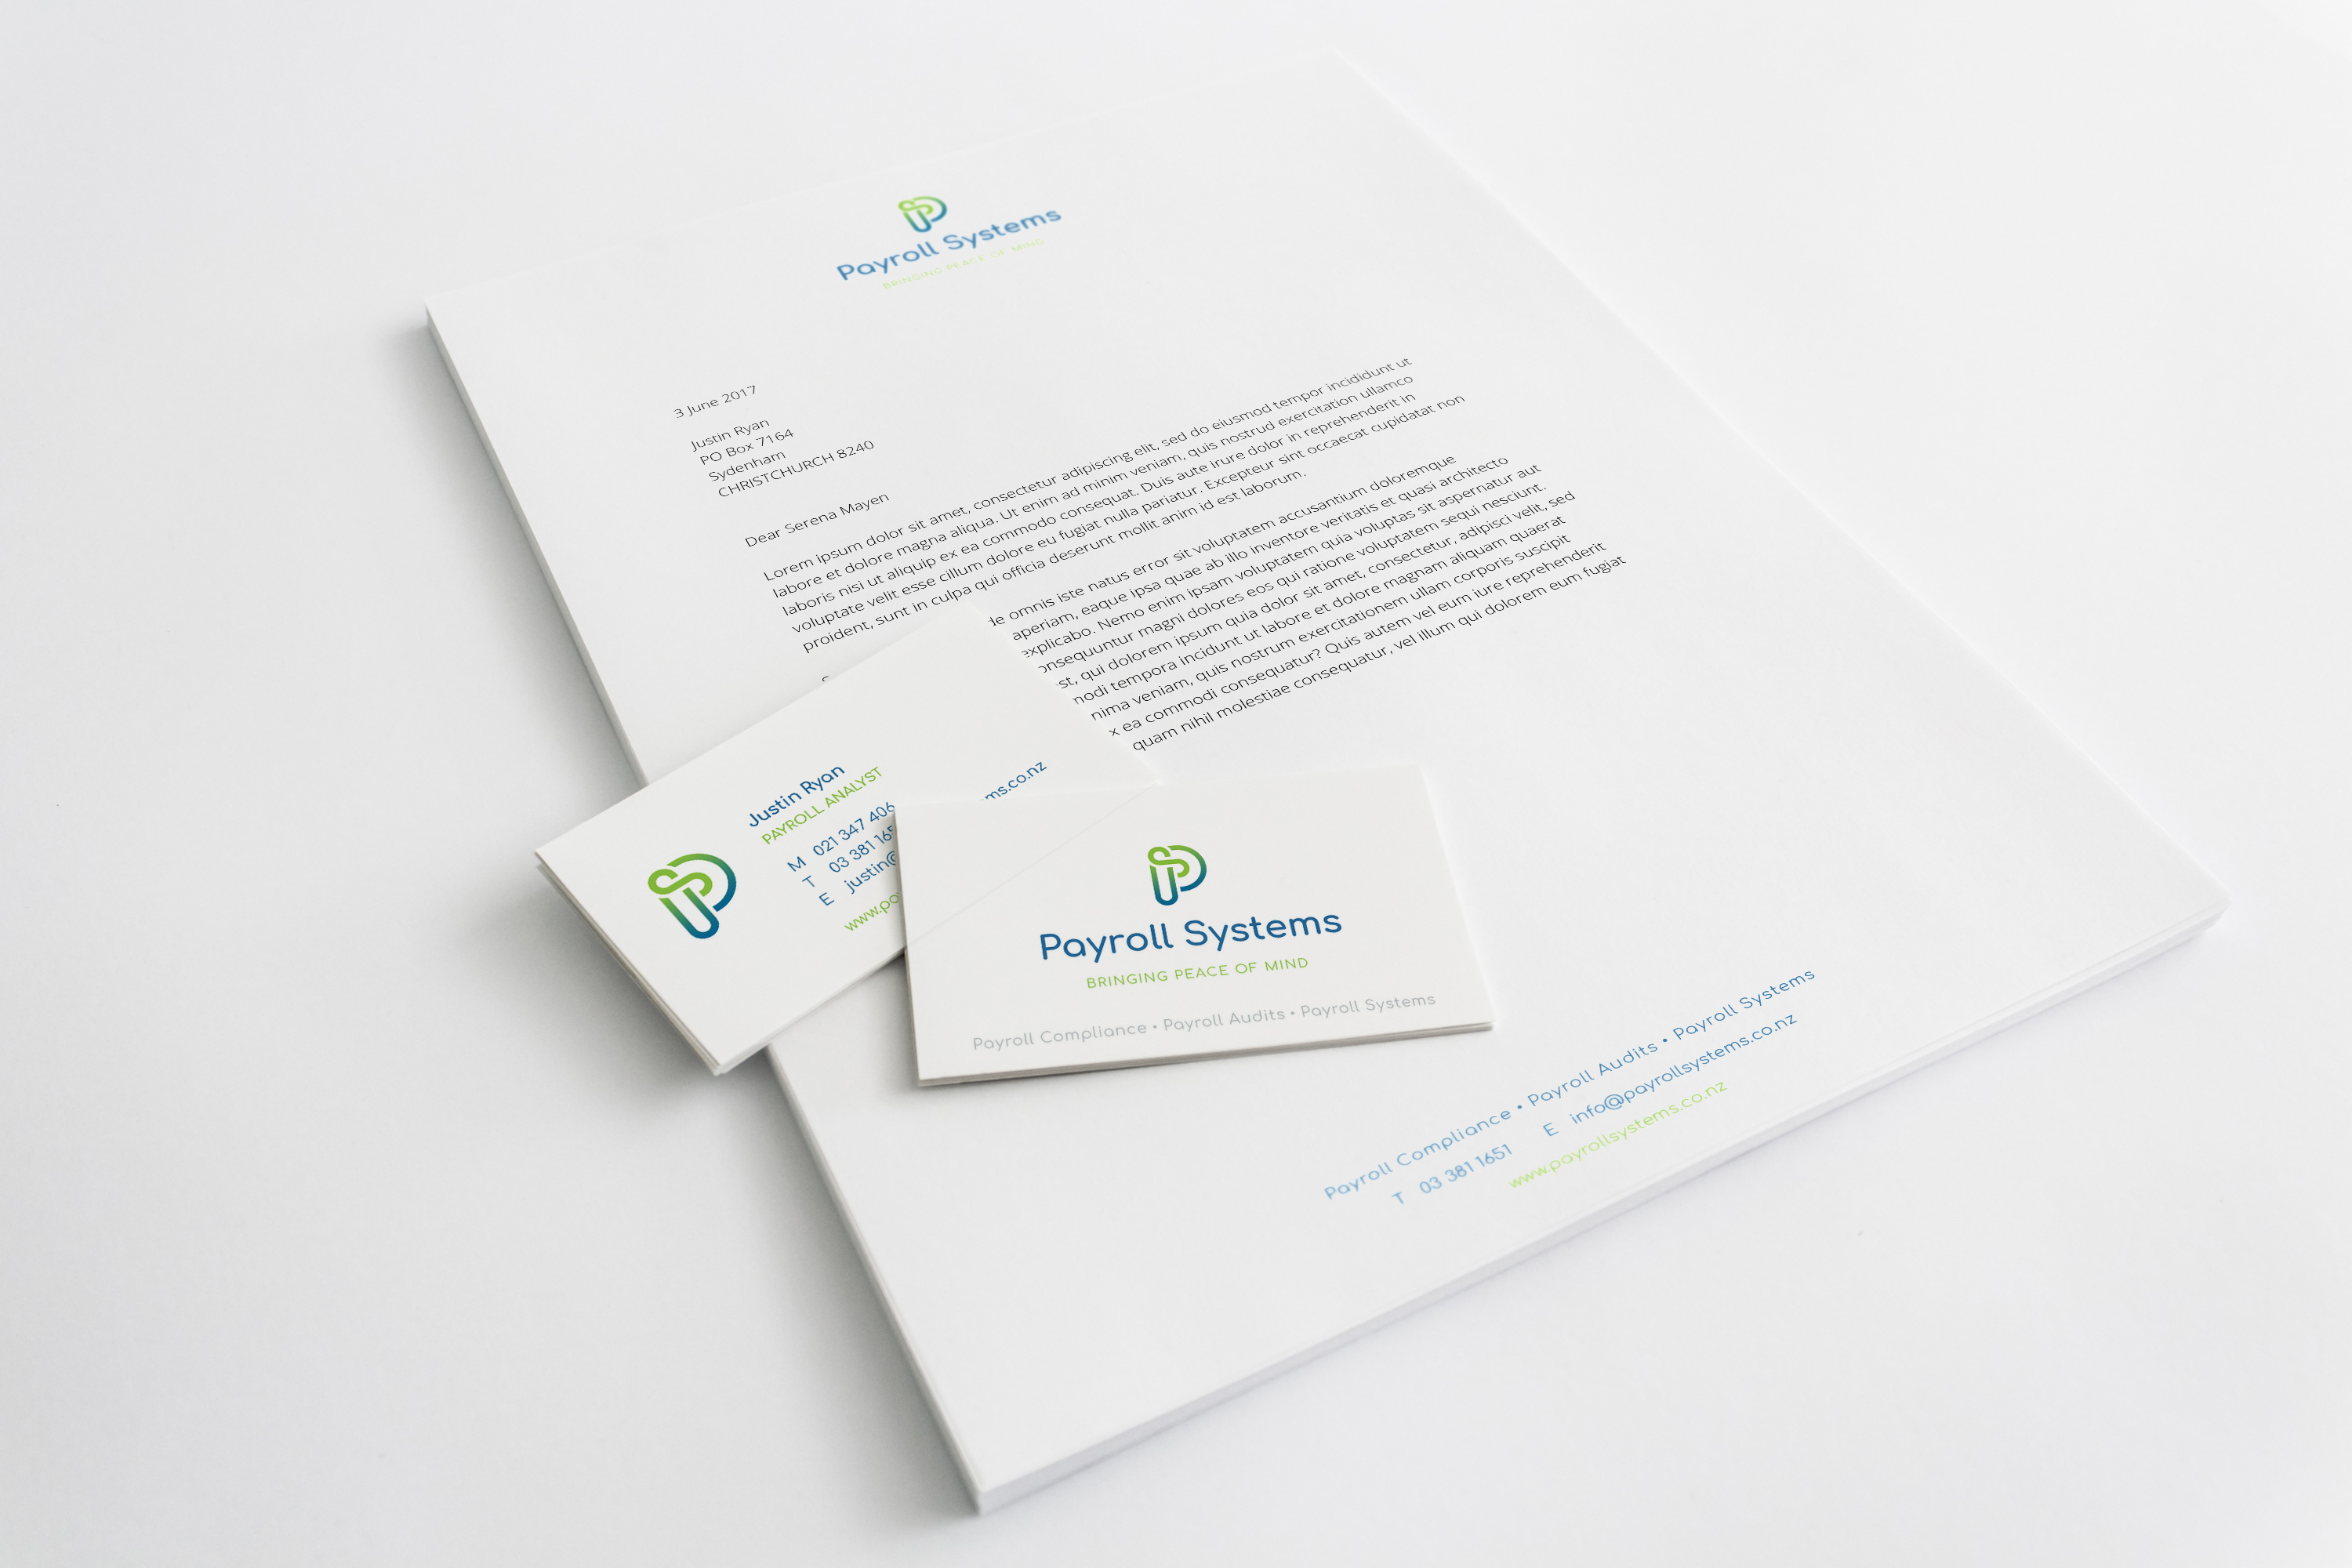 Payroll Systems letterhead and business card